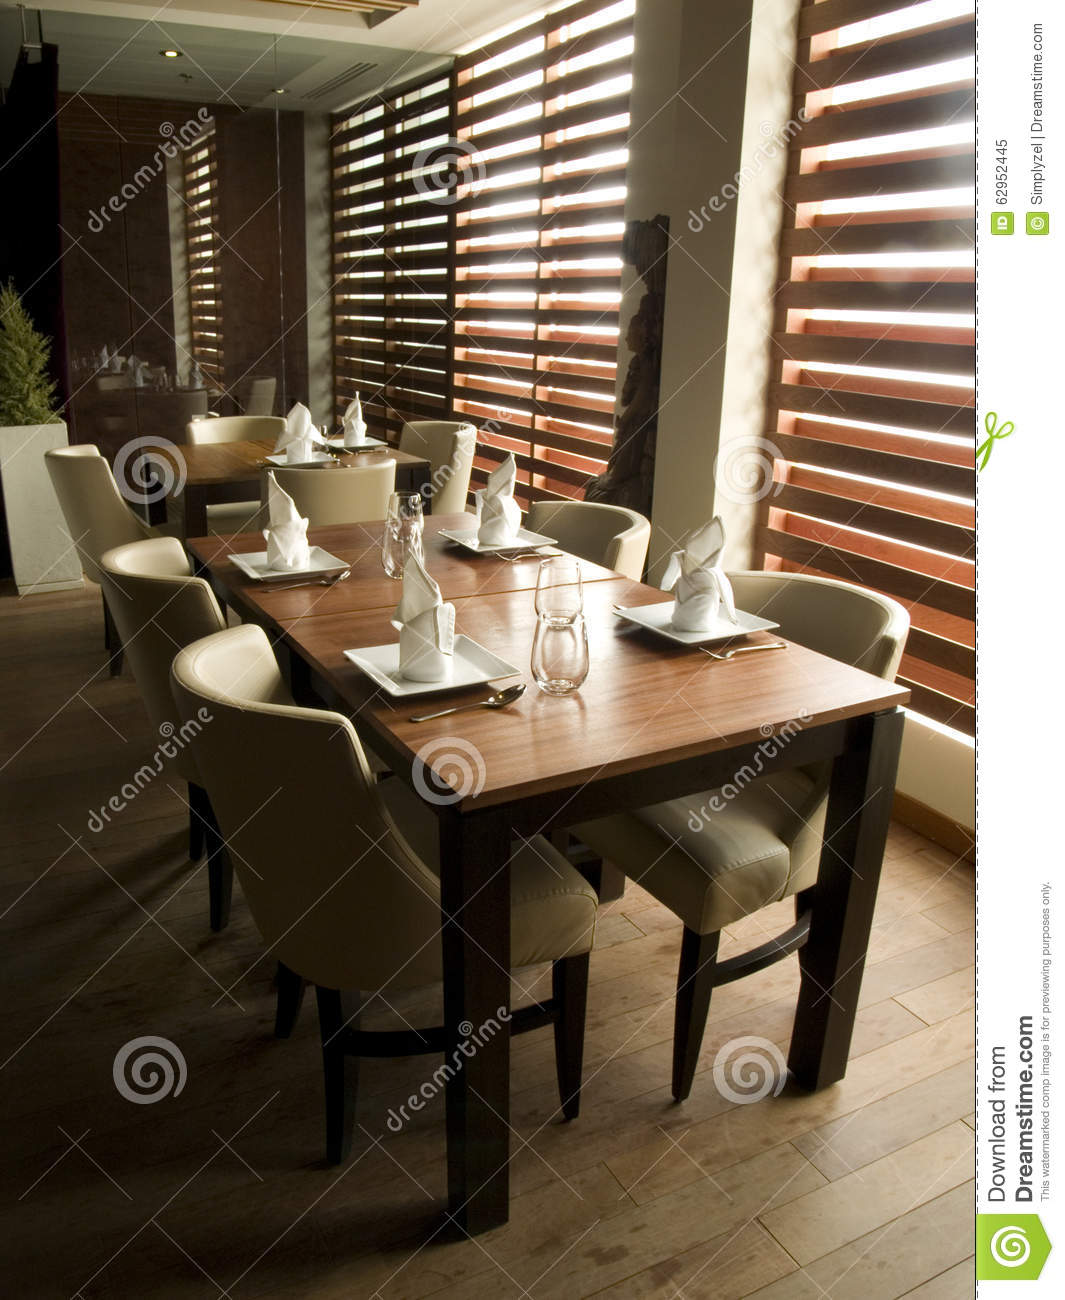 Fancy restaurant table setting - Modern Restaurant Table Setting